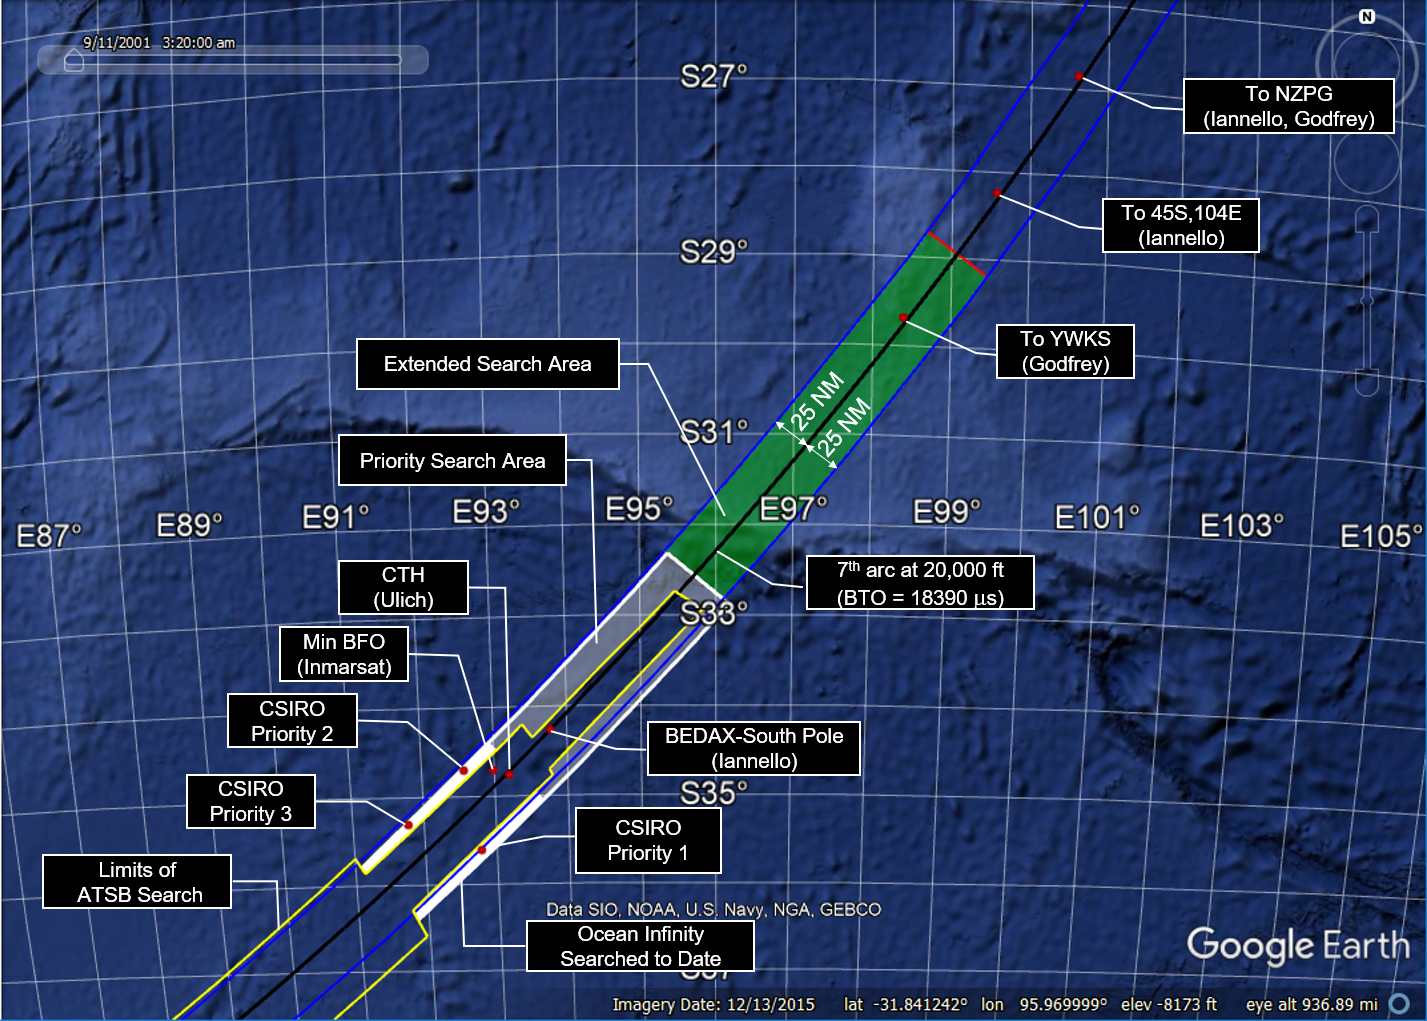 Mh370 Search Update Feb 16 2018 171 The Disappearance Of